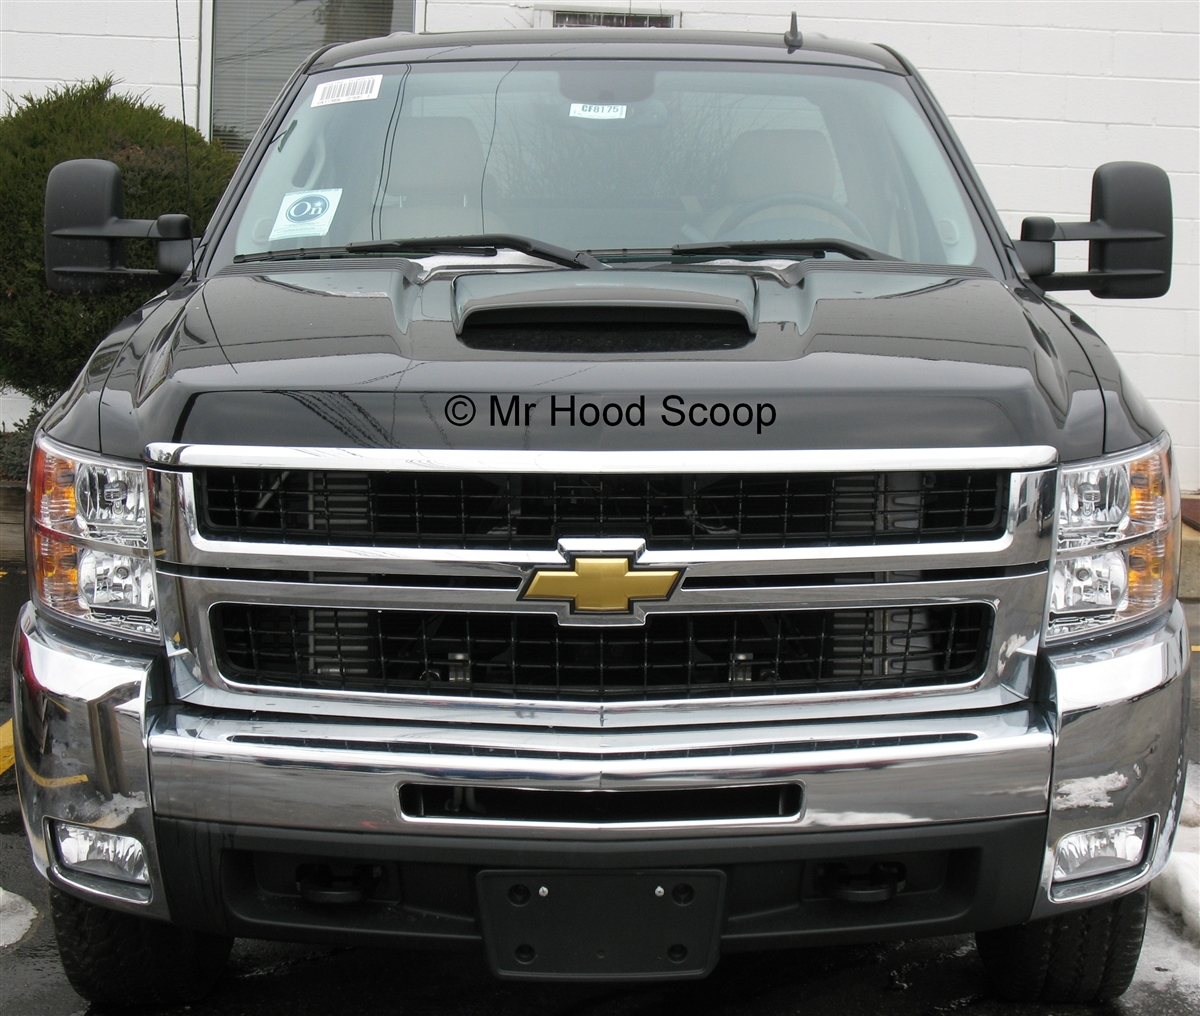 chevy silverado hood scoop hs003 by mrhoodscoop. Black Bedroom Furniture Sets. Home Design Ideas